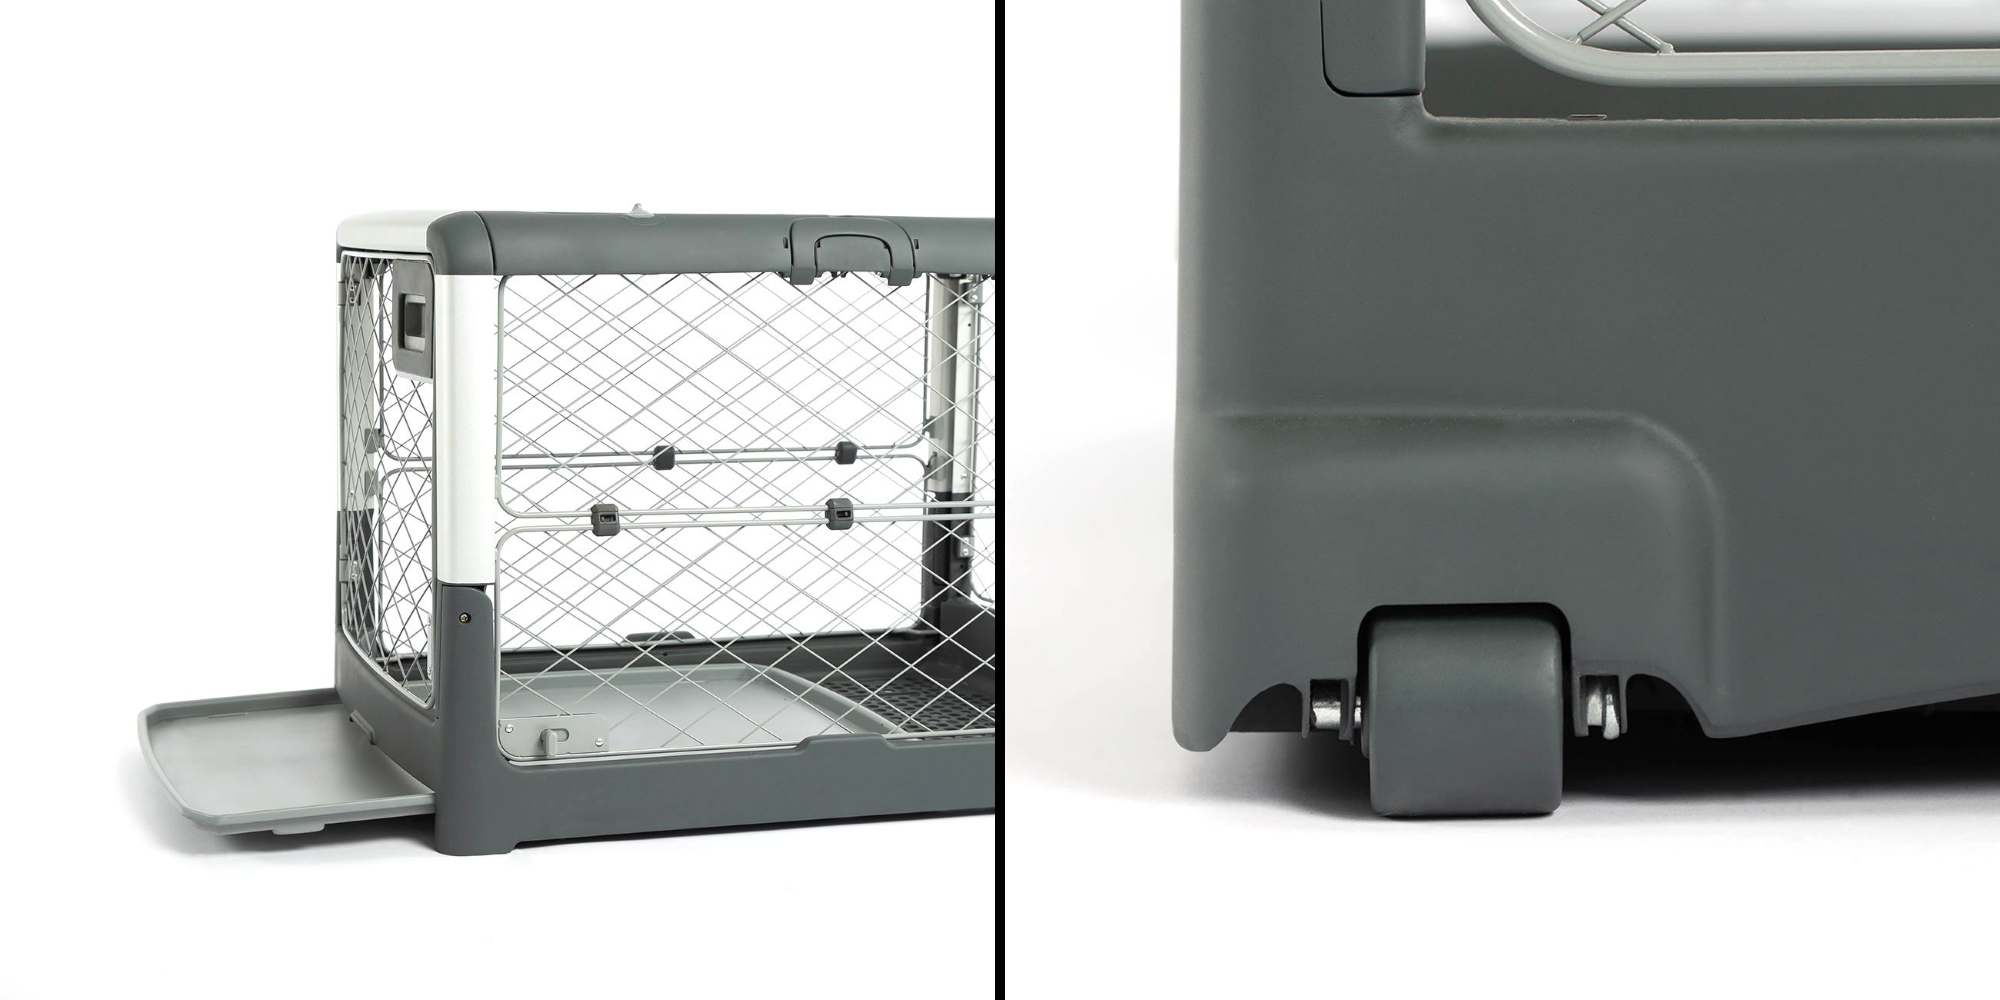 Revol Dog Crate - Easy Transportation and Storage